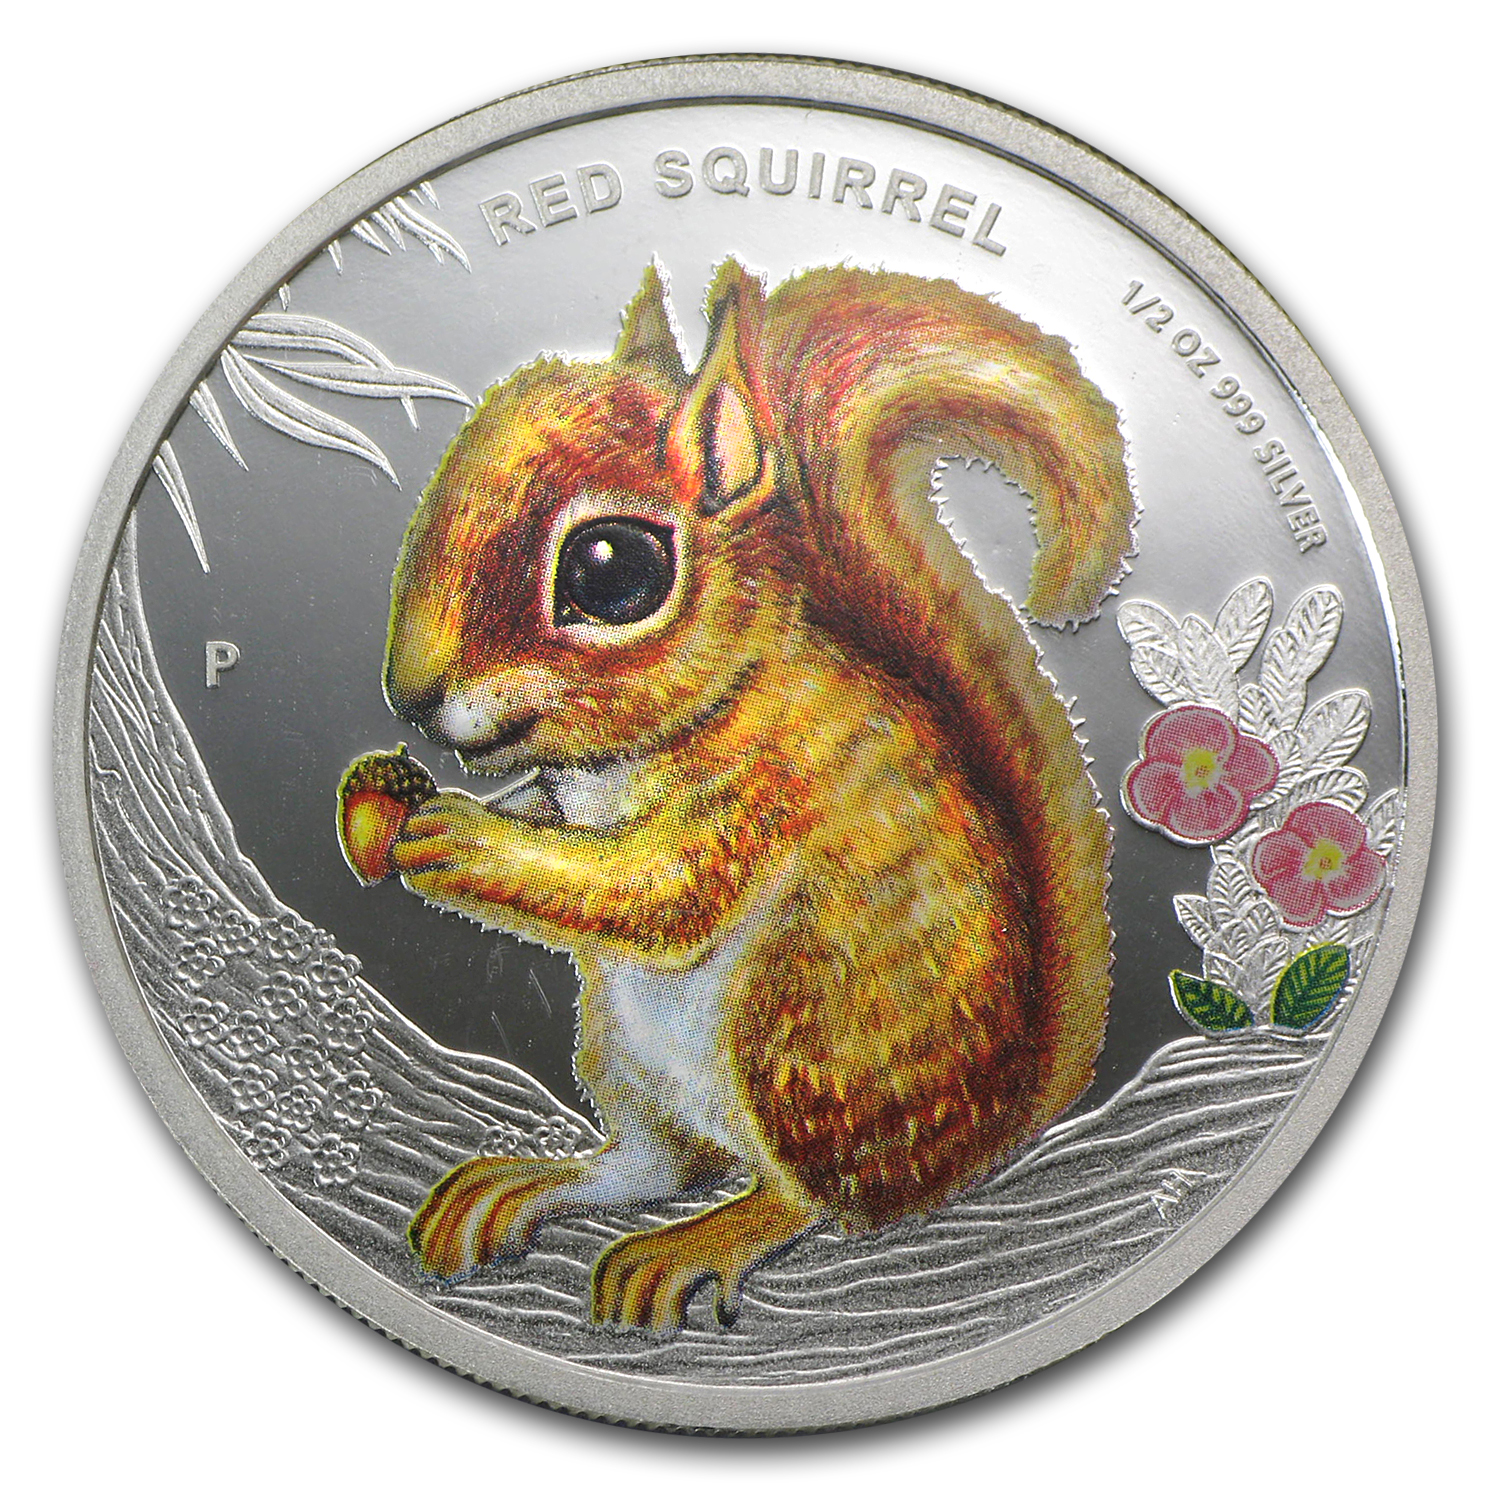 2013 Tuvalu 1/2 oz Proof Silver Forest Babies (Red Squirrel)